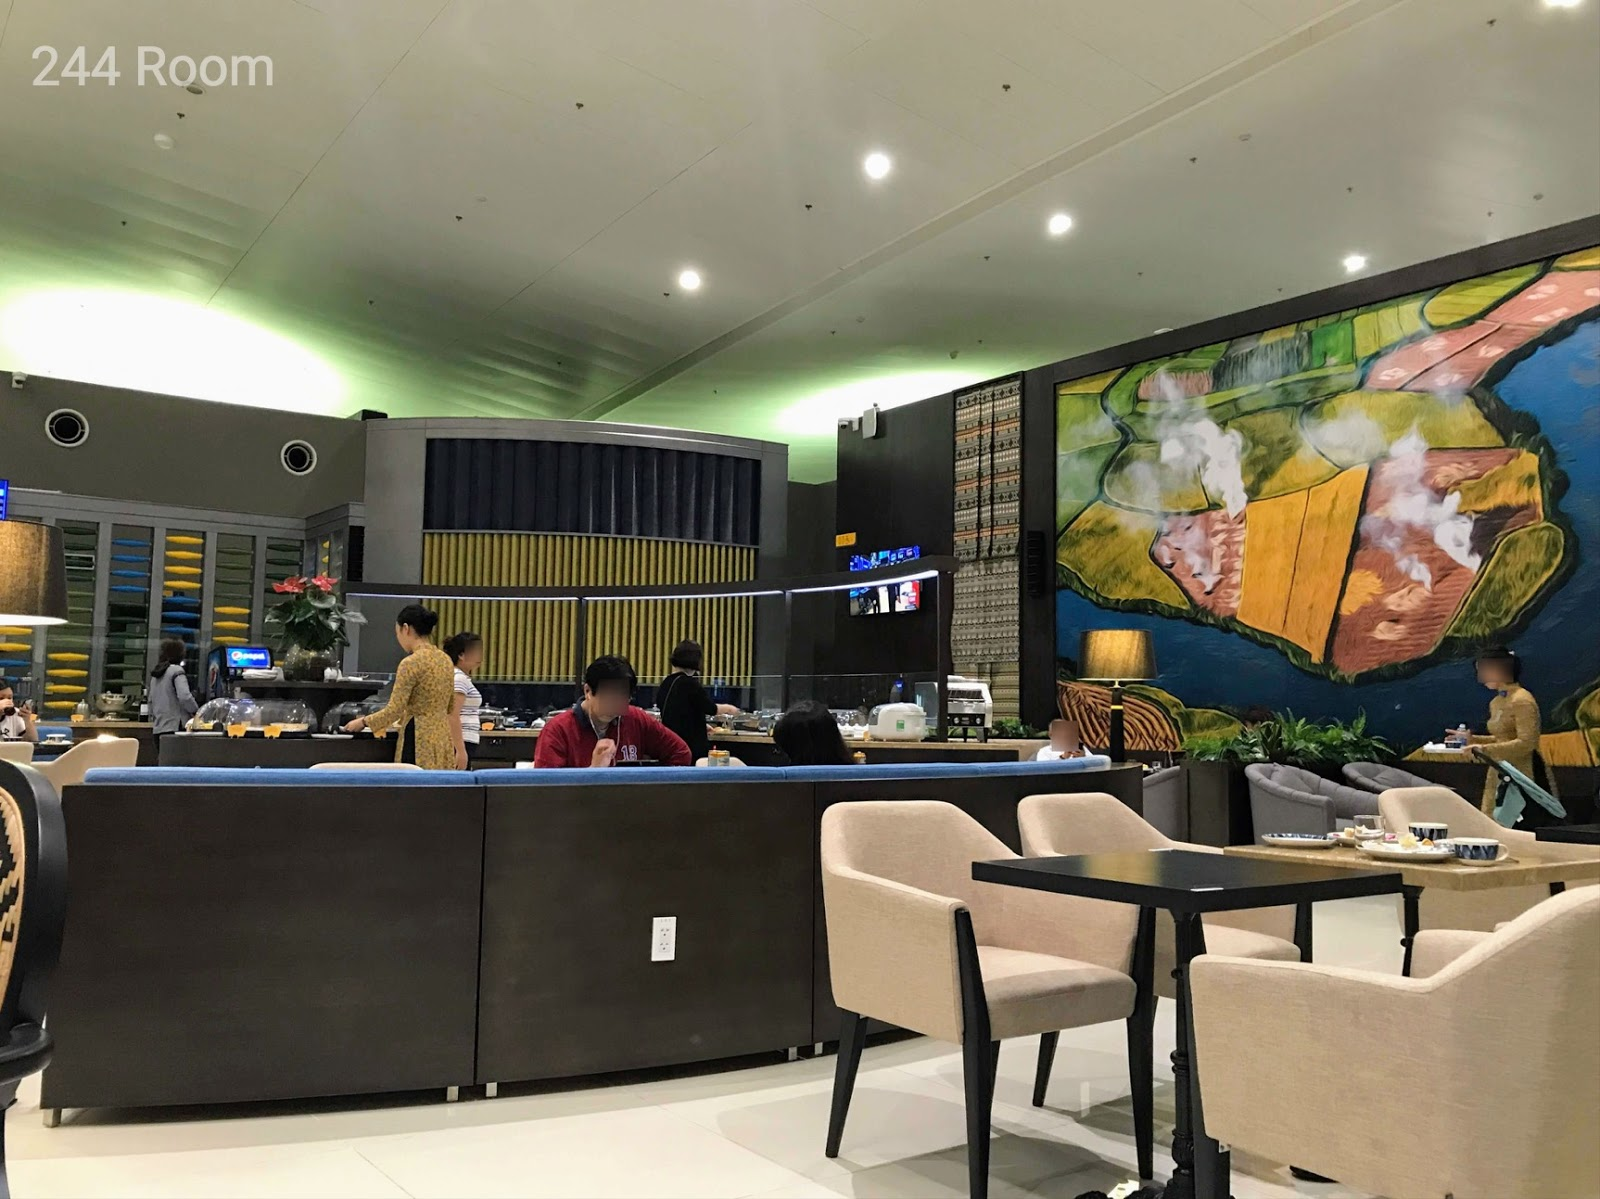 Song hong business lounge interior